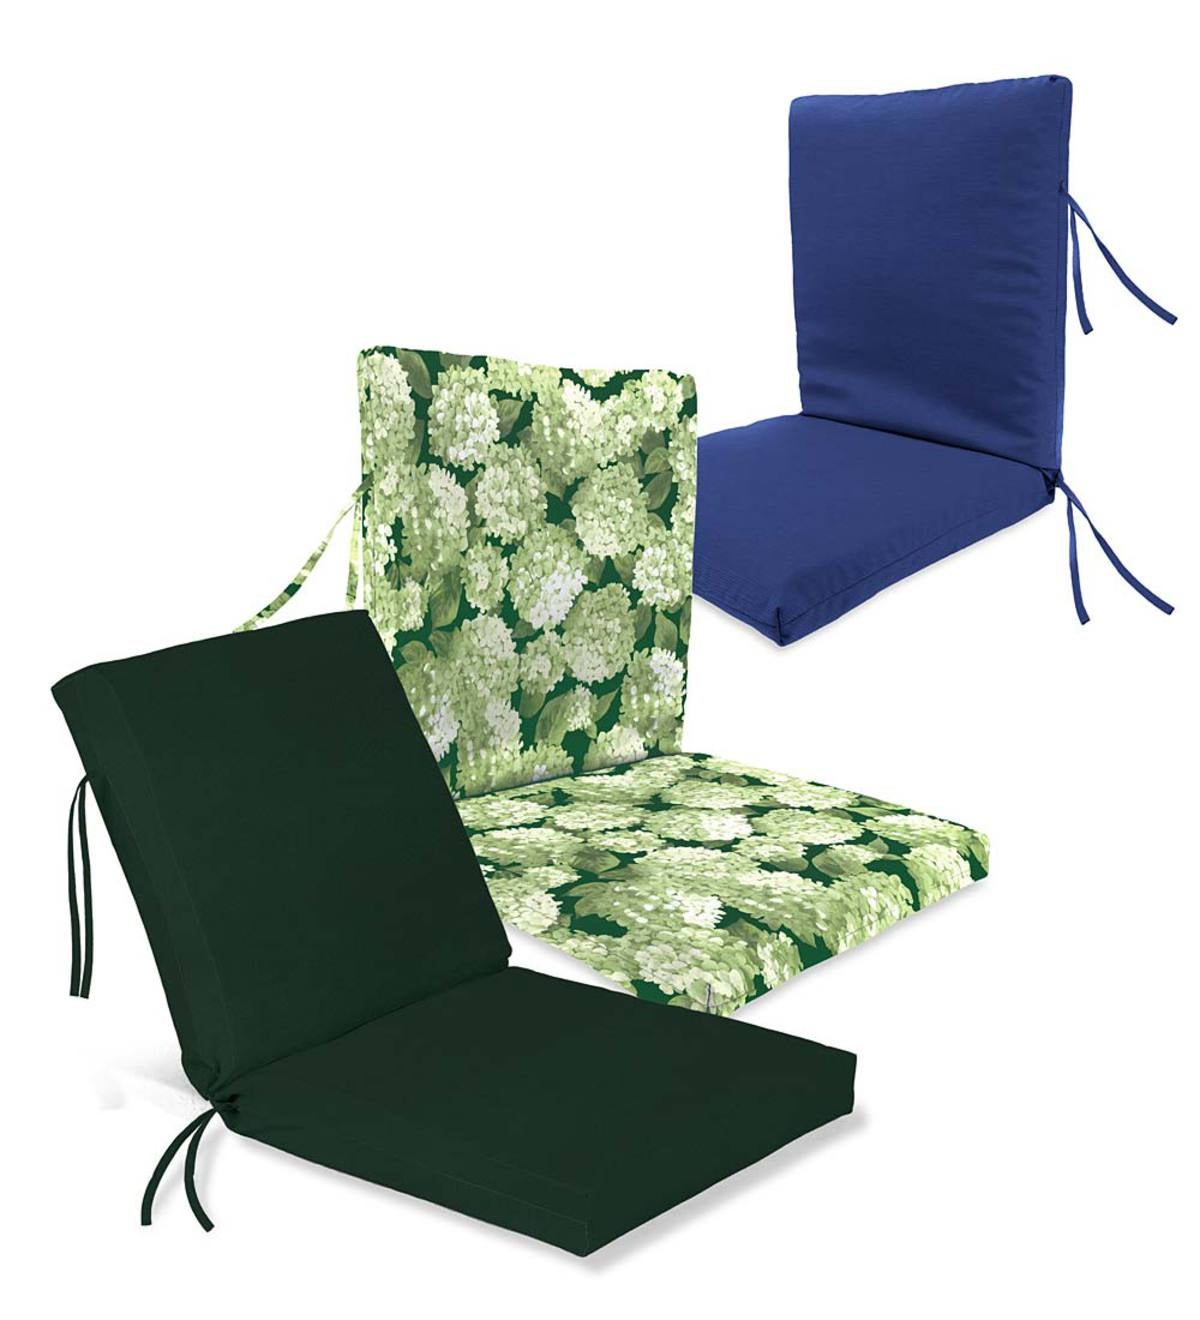 Polyester Classic Chair Cushions, Hinged Design With Ties